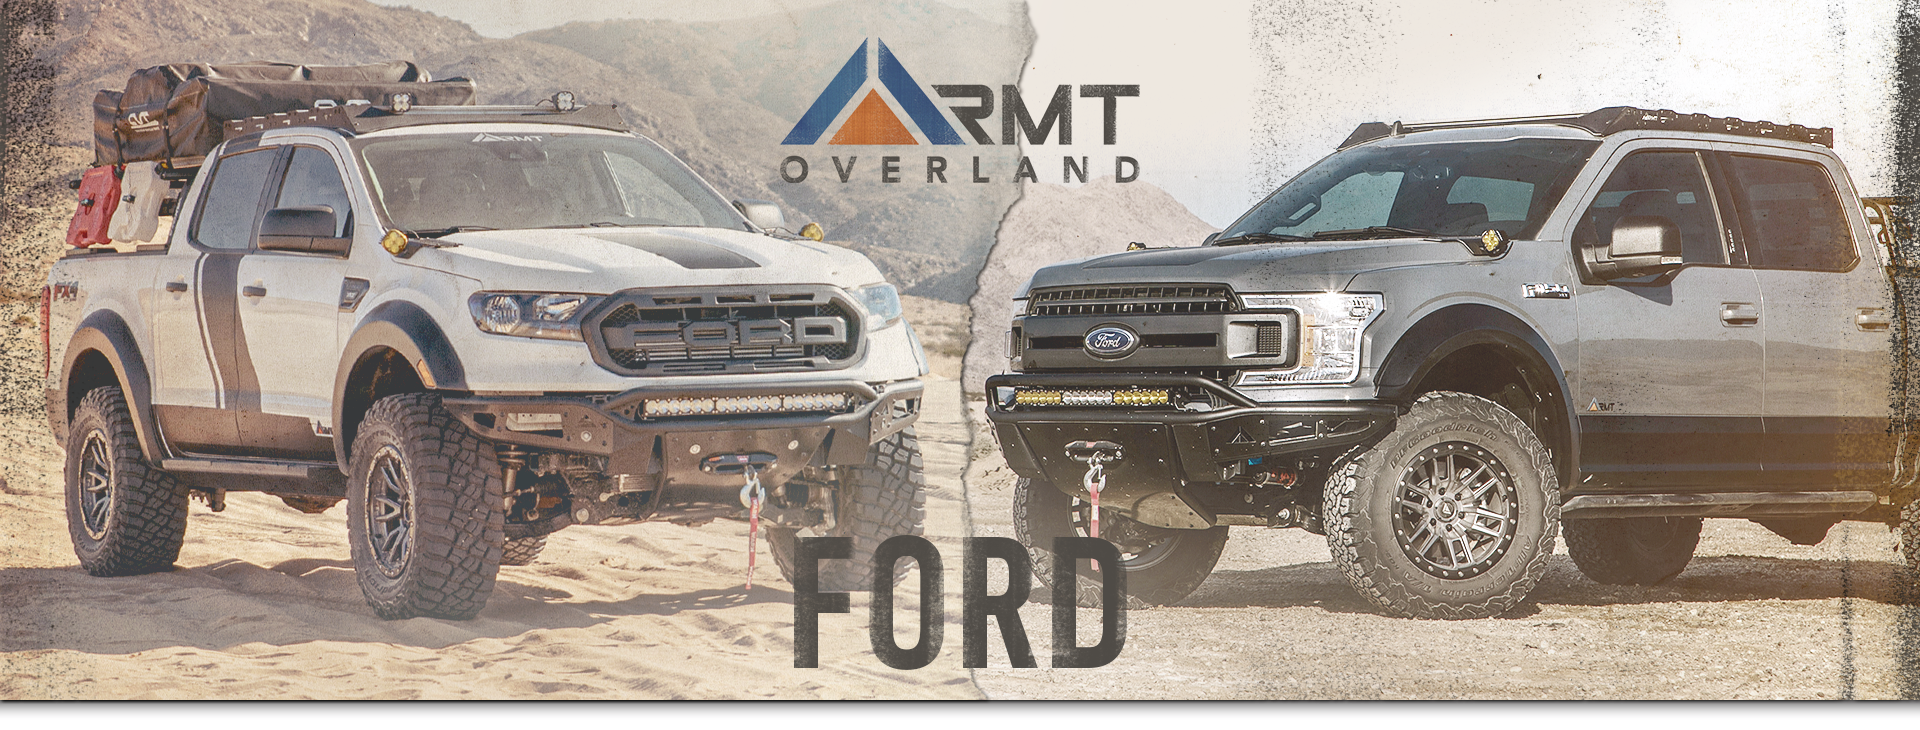 Rmt Overland Trucks Bill Alexander Ford Lincoln